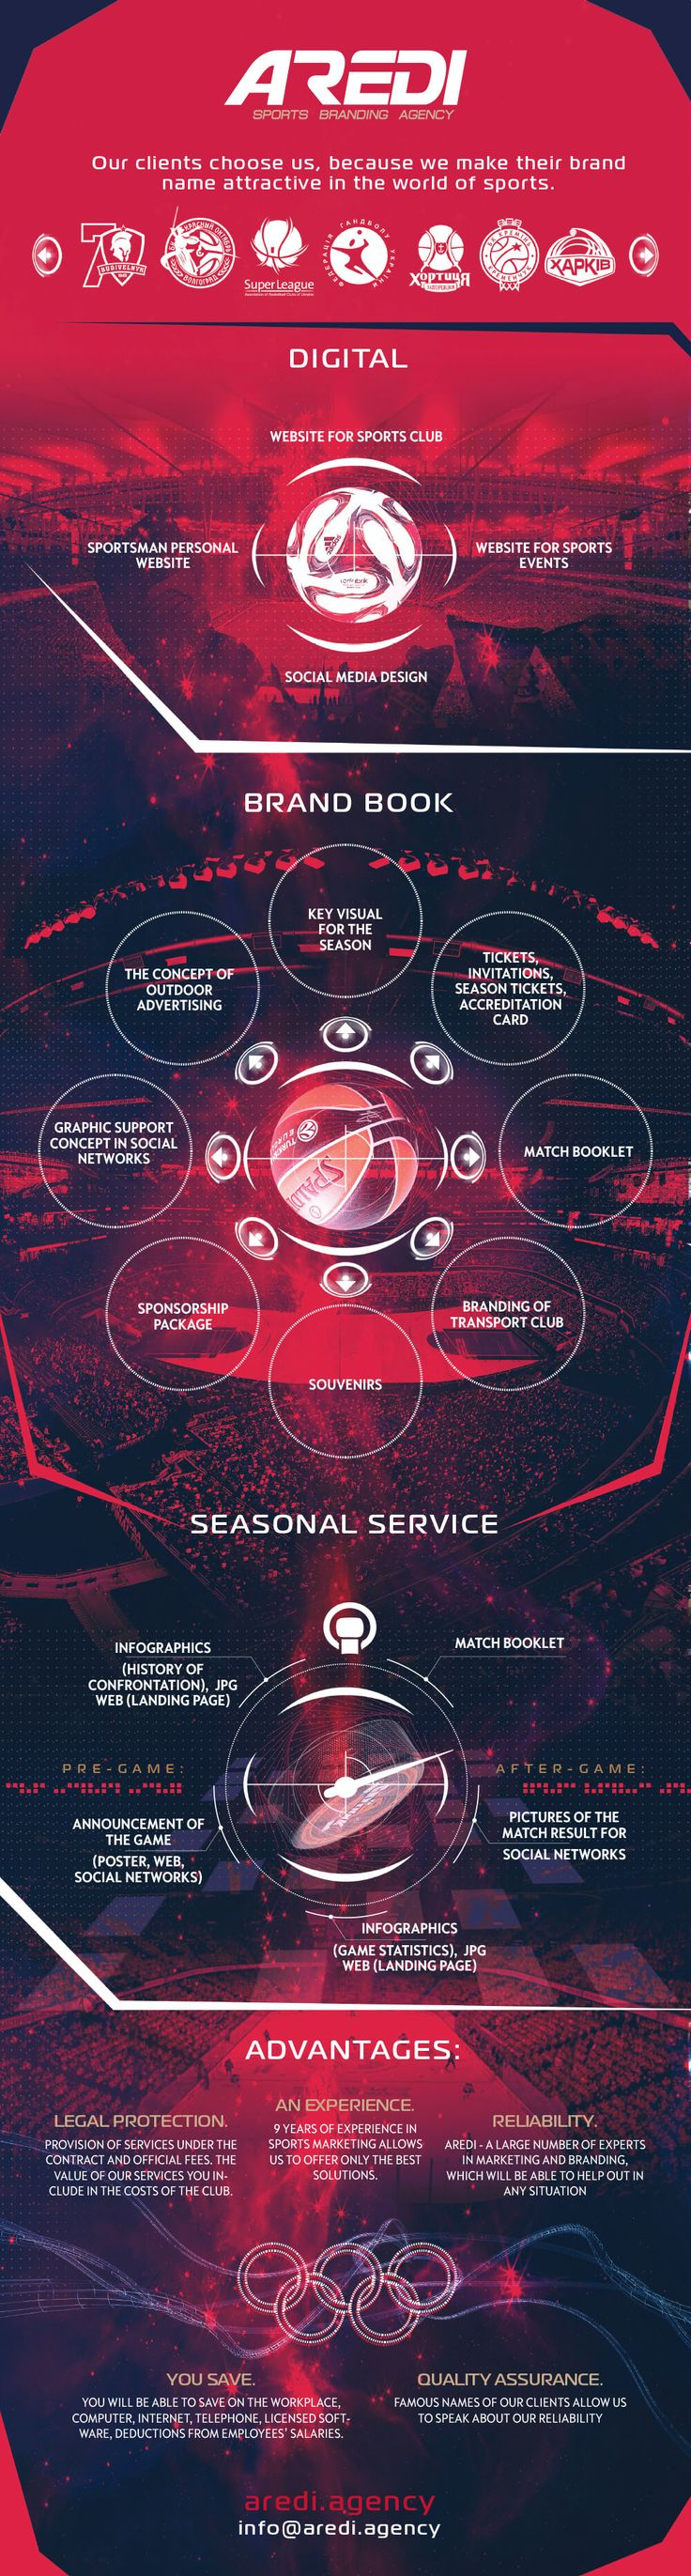 Sports branding infografic, Service for sports clubs, sports branding agency AREDI, Digital, websites for sports clubs, create, Website sporting events, personal sites athletes, Key visual, social media design, match day, Pre-game, After-game, #sportaredi